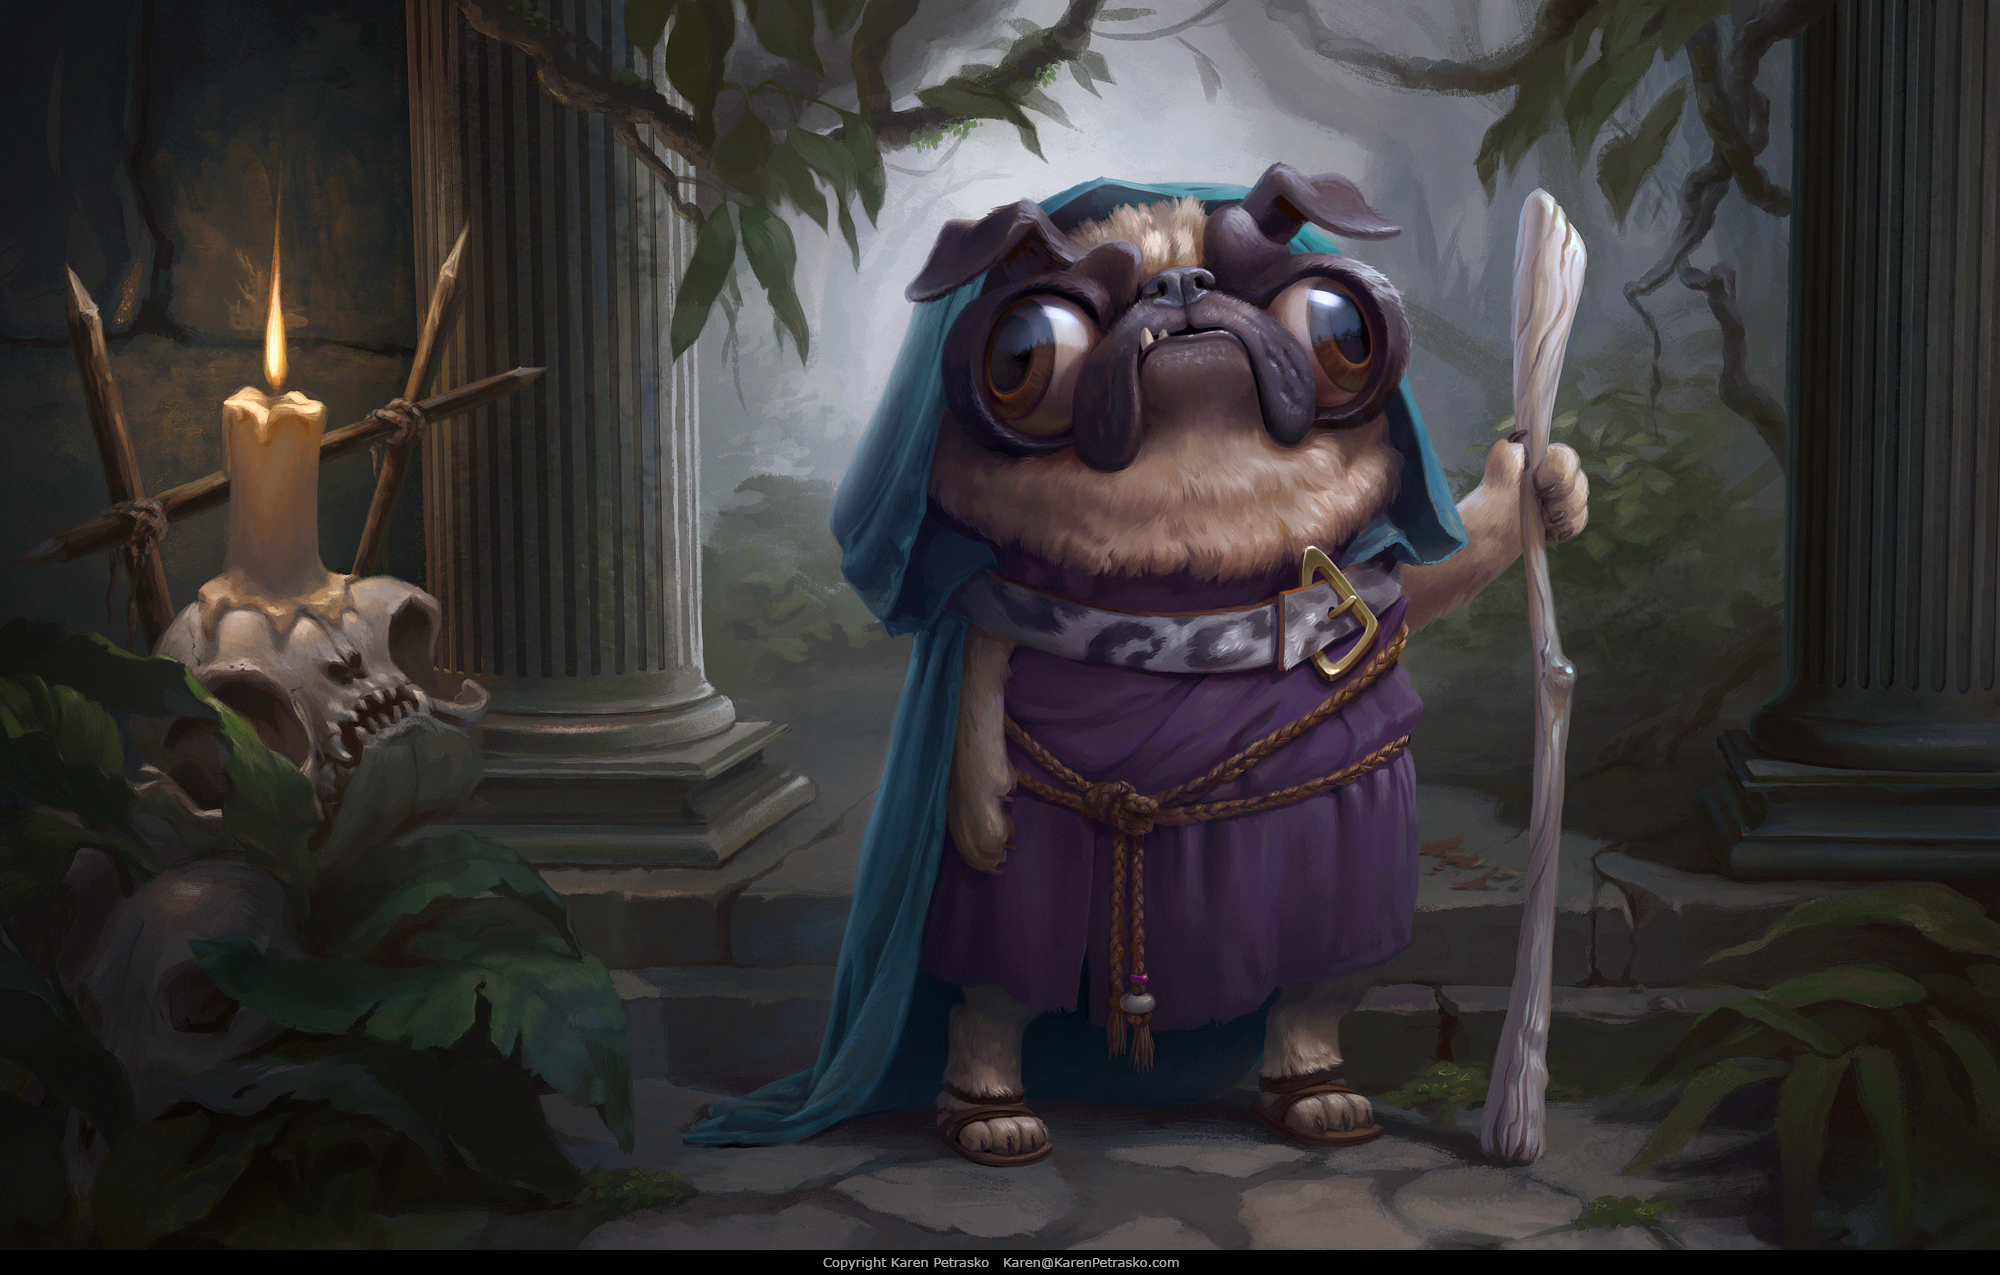 Cute pug wizard in jungle temple ruins